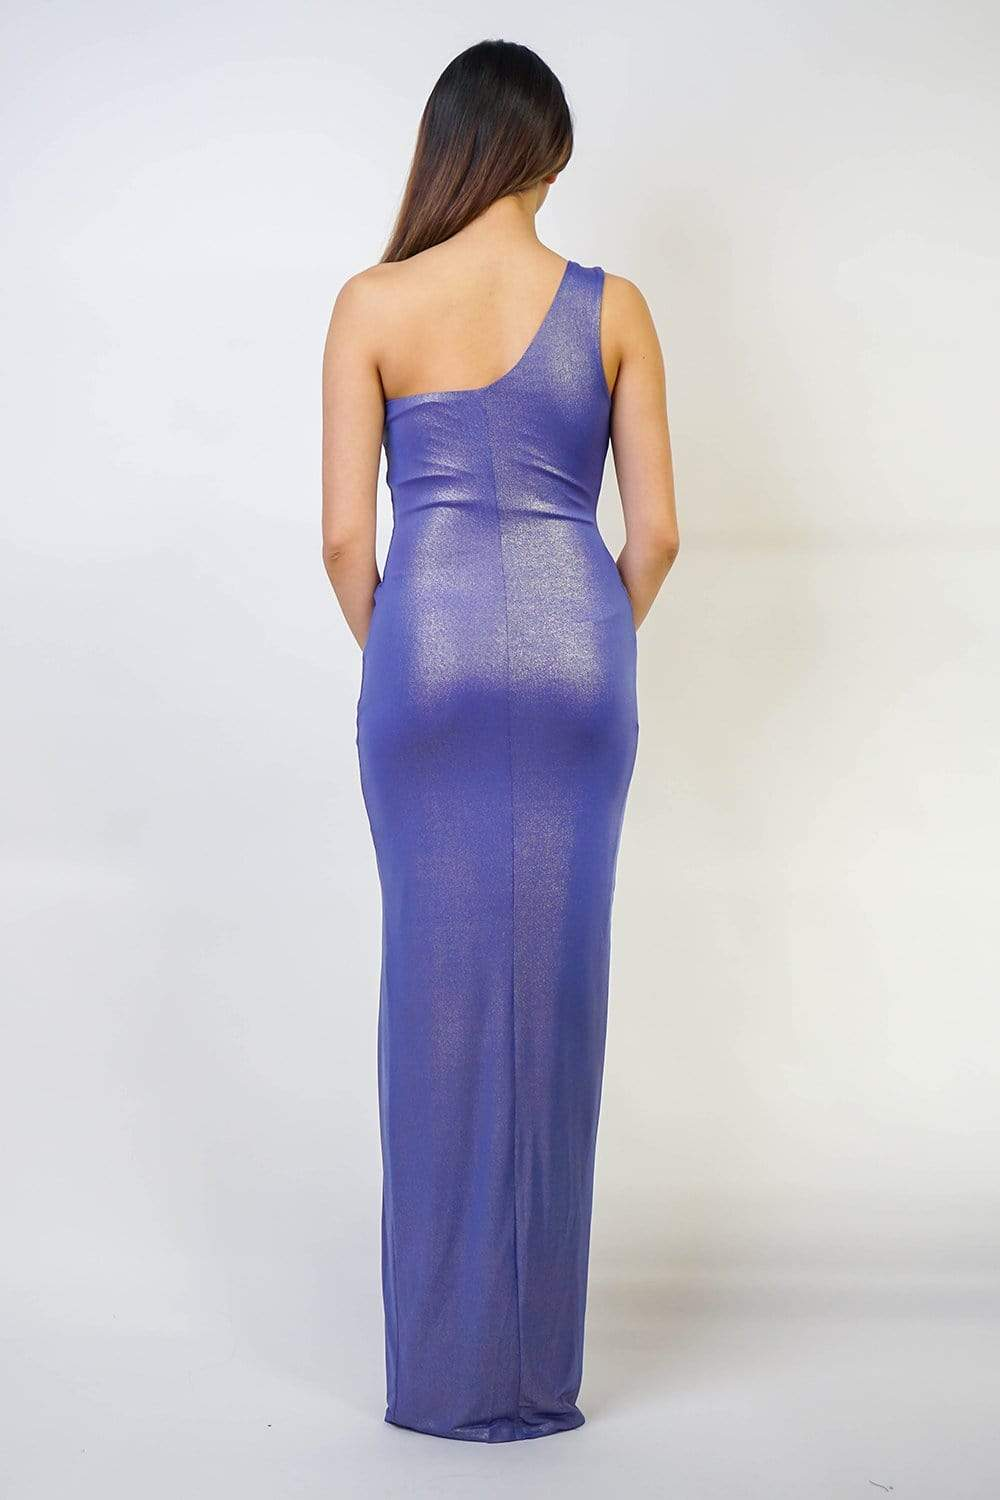 GOWN Shiny Periwinkle Gown - Chloe Dao